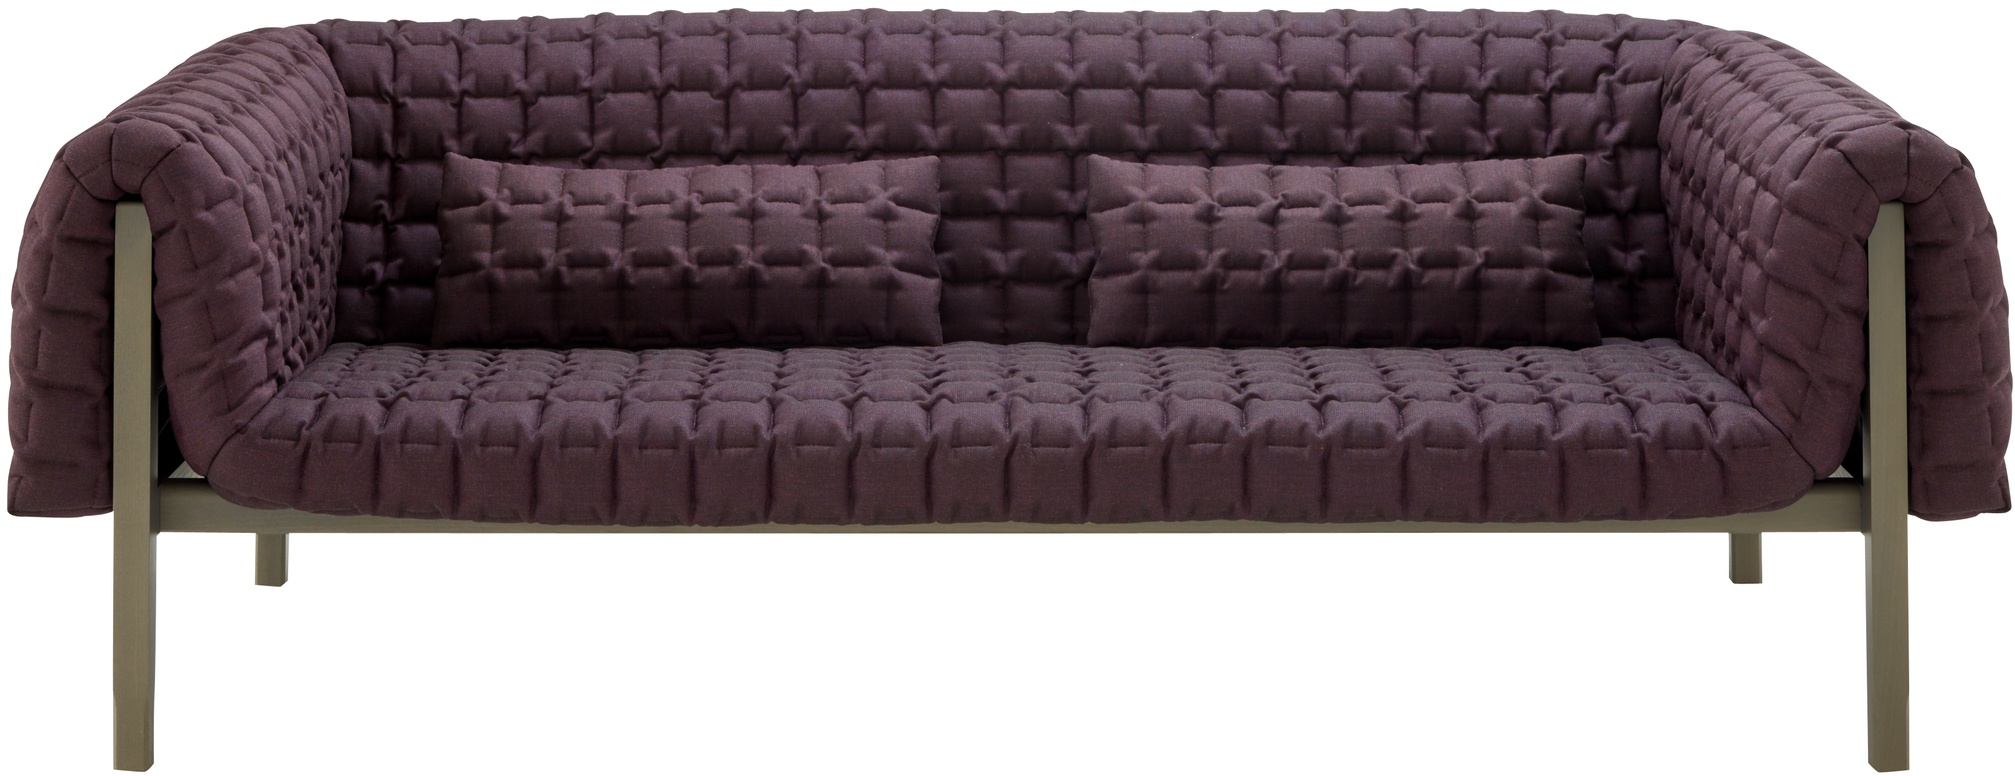 Sofa Ligne Roset Pascal Mourgue Smala Sofa Bed Design Classic By Ligne Roset Smala From Ligne